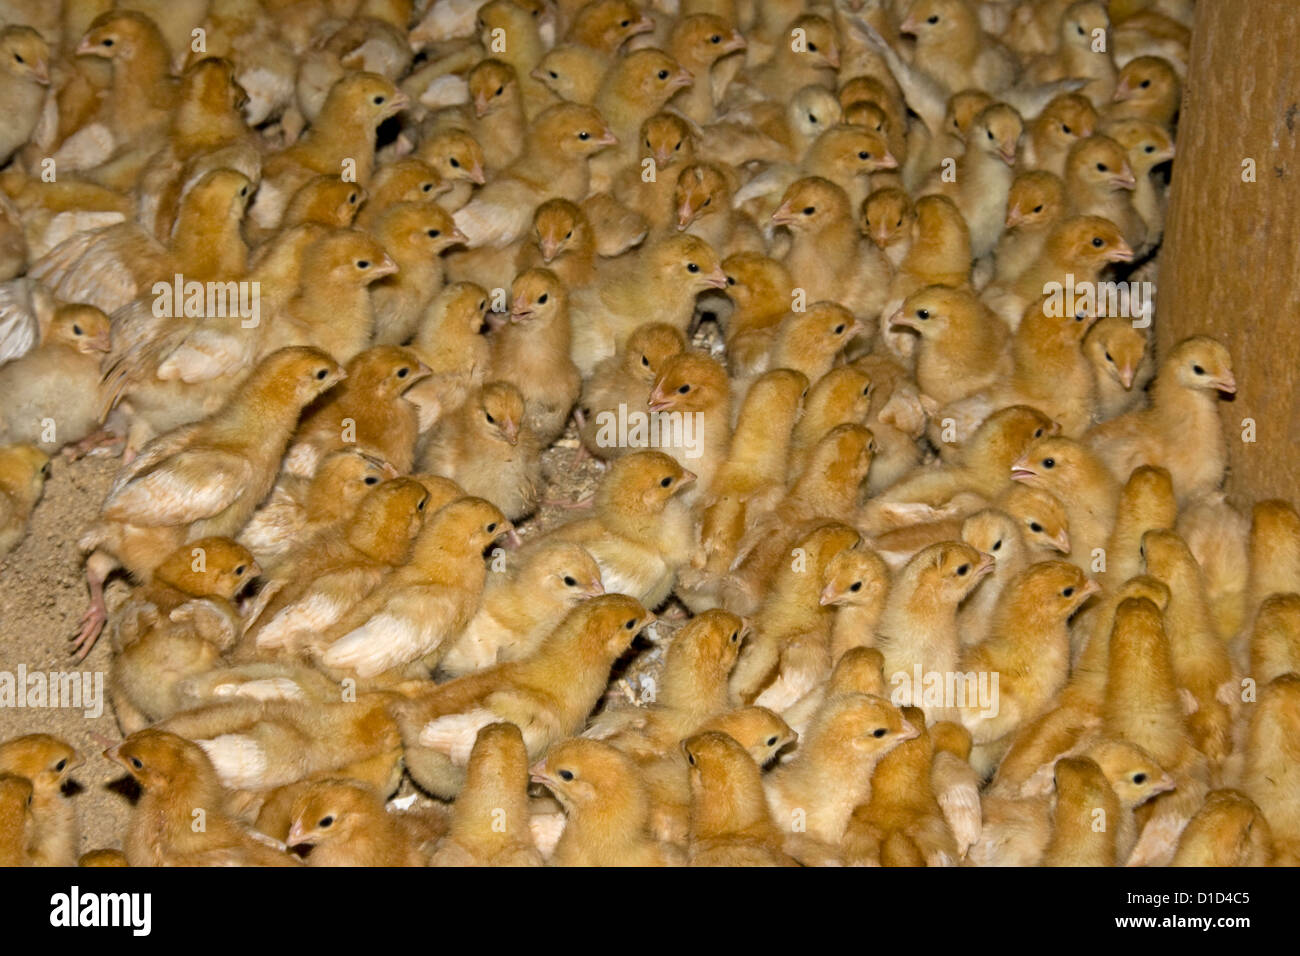 Large flock of fluffy yellow day old chicks at commercial free range poultry farm - Stock Image